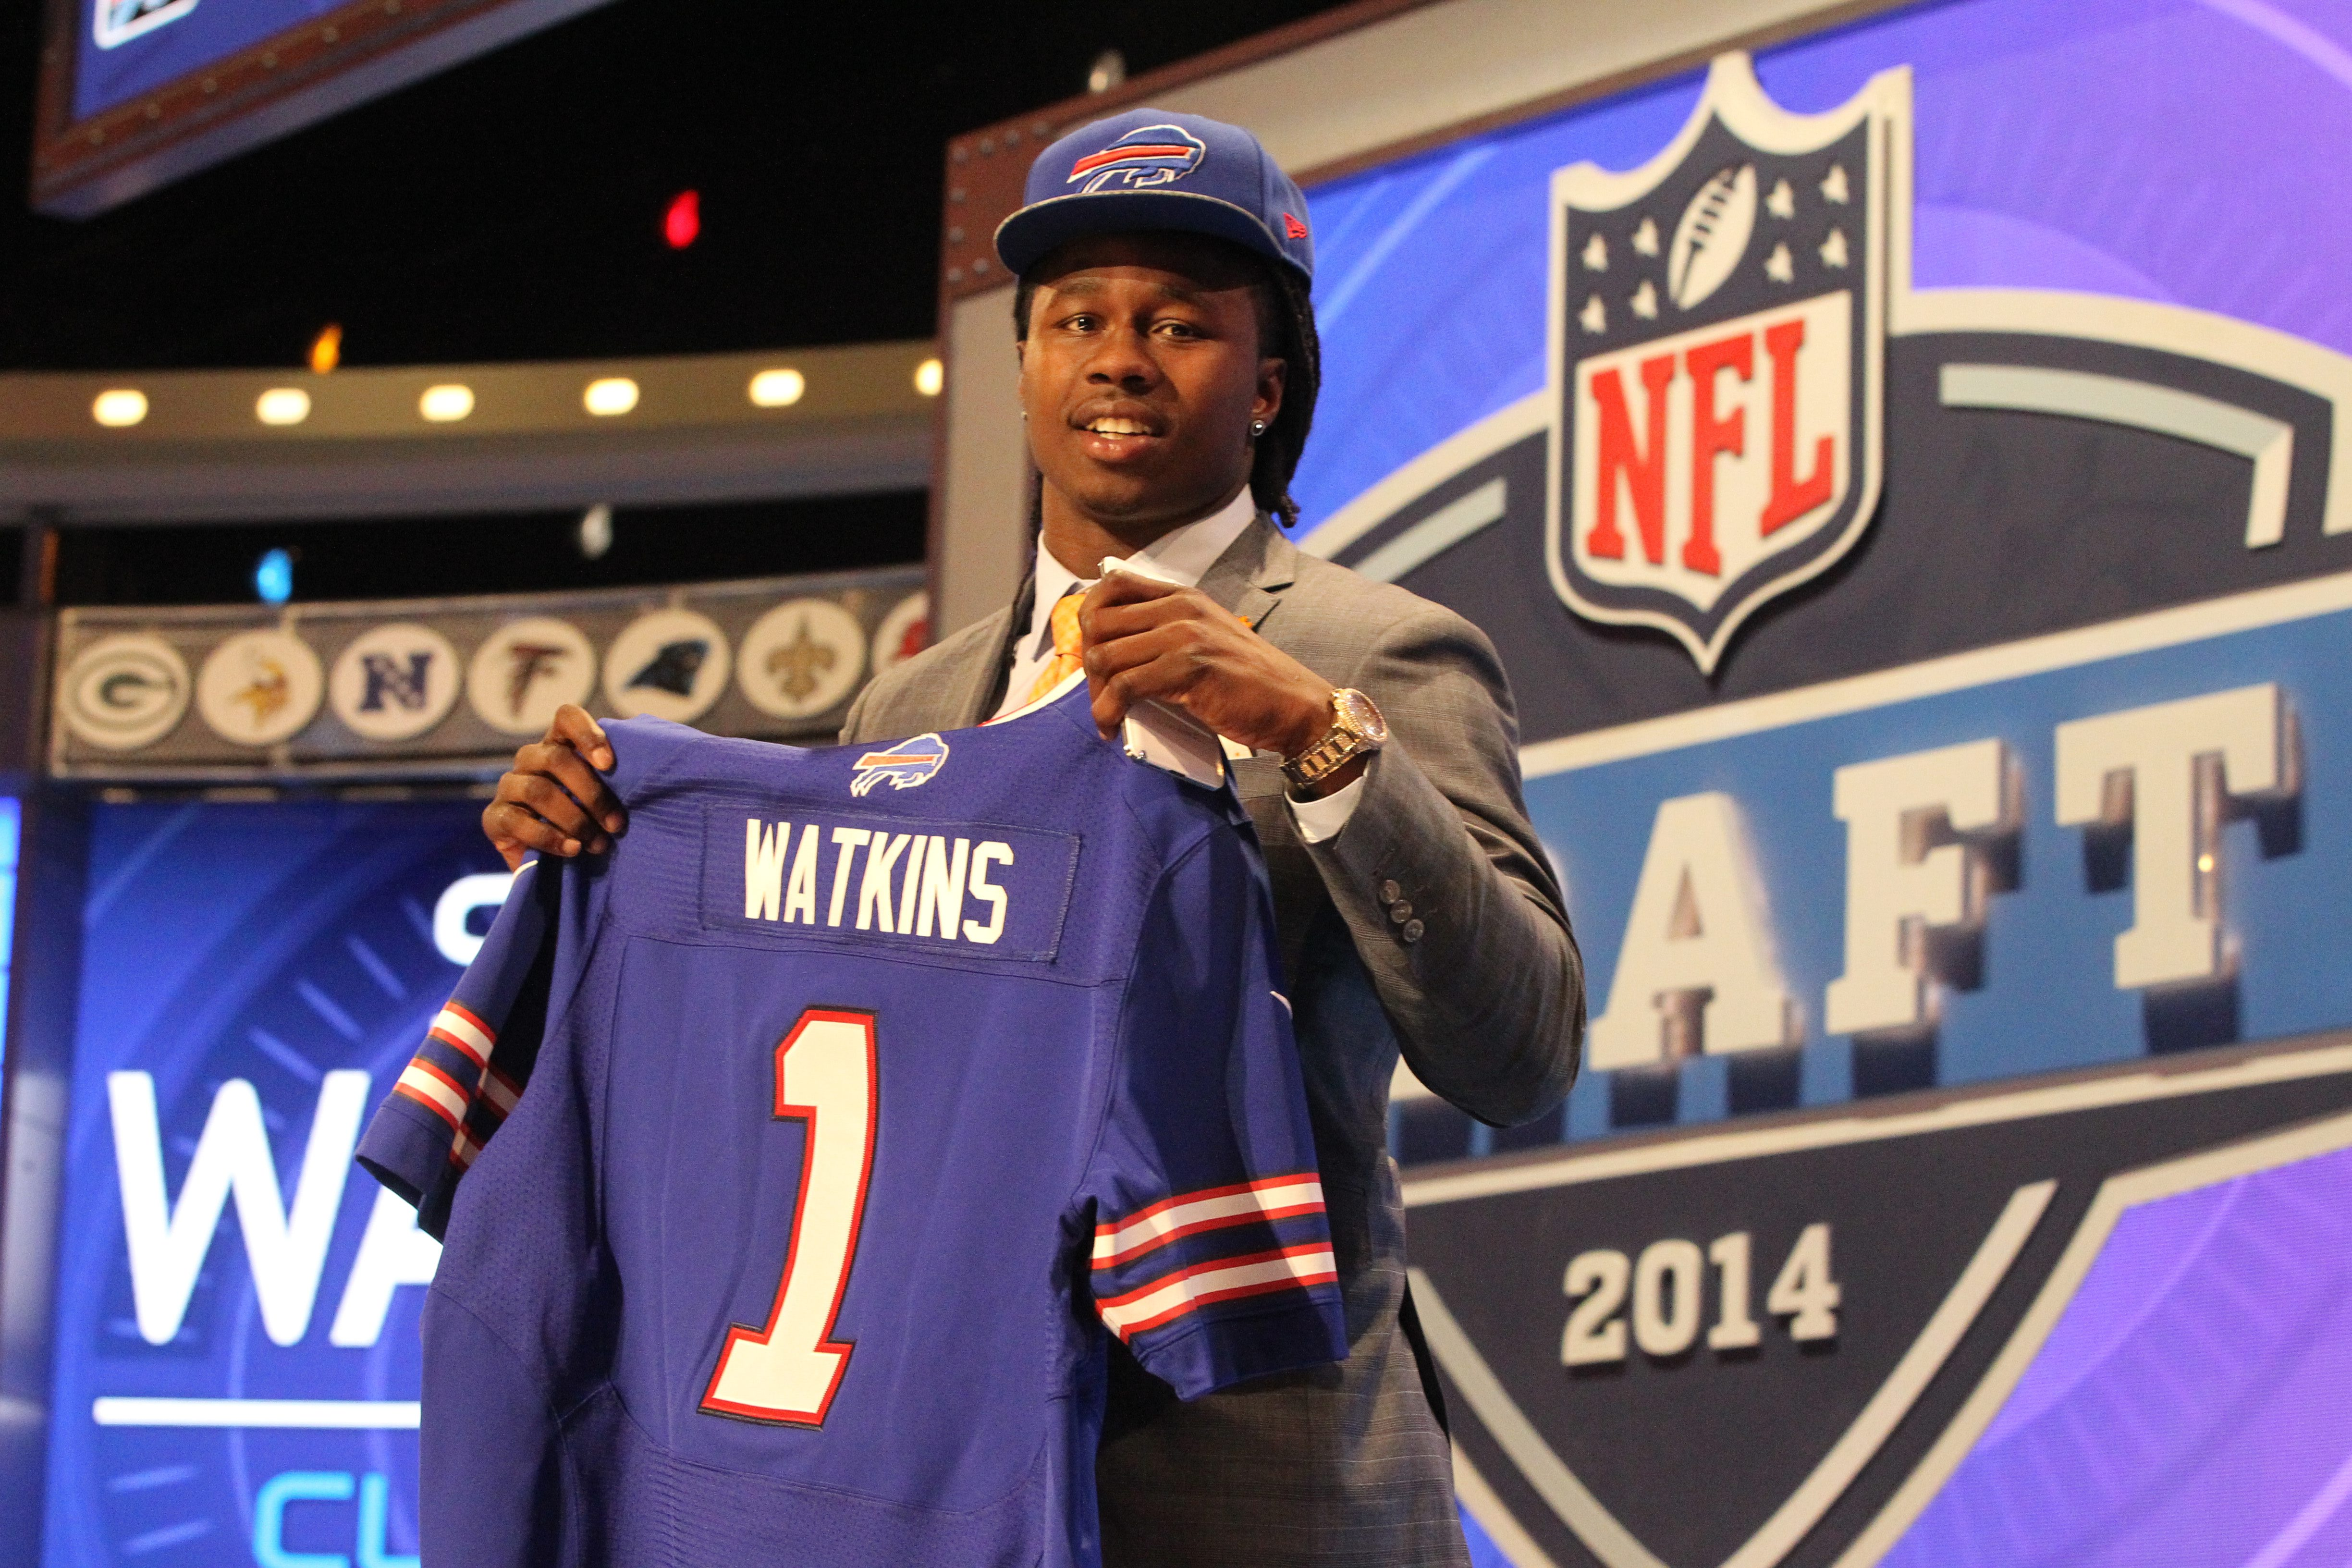 Bills draft pick Sammy Watkins holds up a jersey at Radio City Music Hall in New York City. (James P. McCoy/Buffalo News)